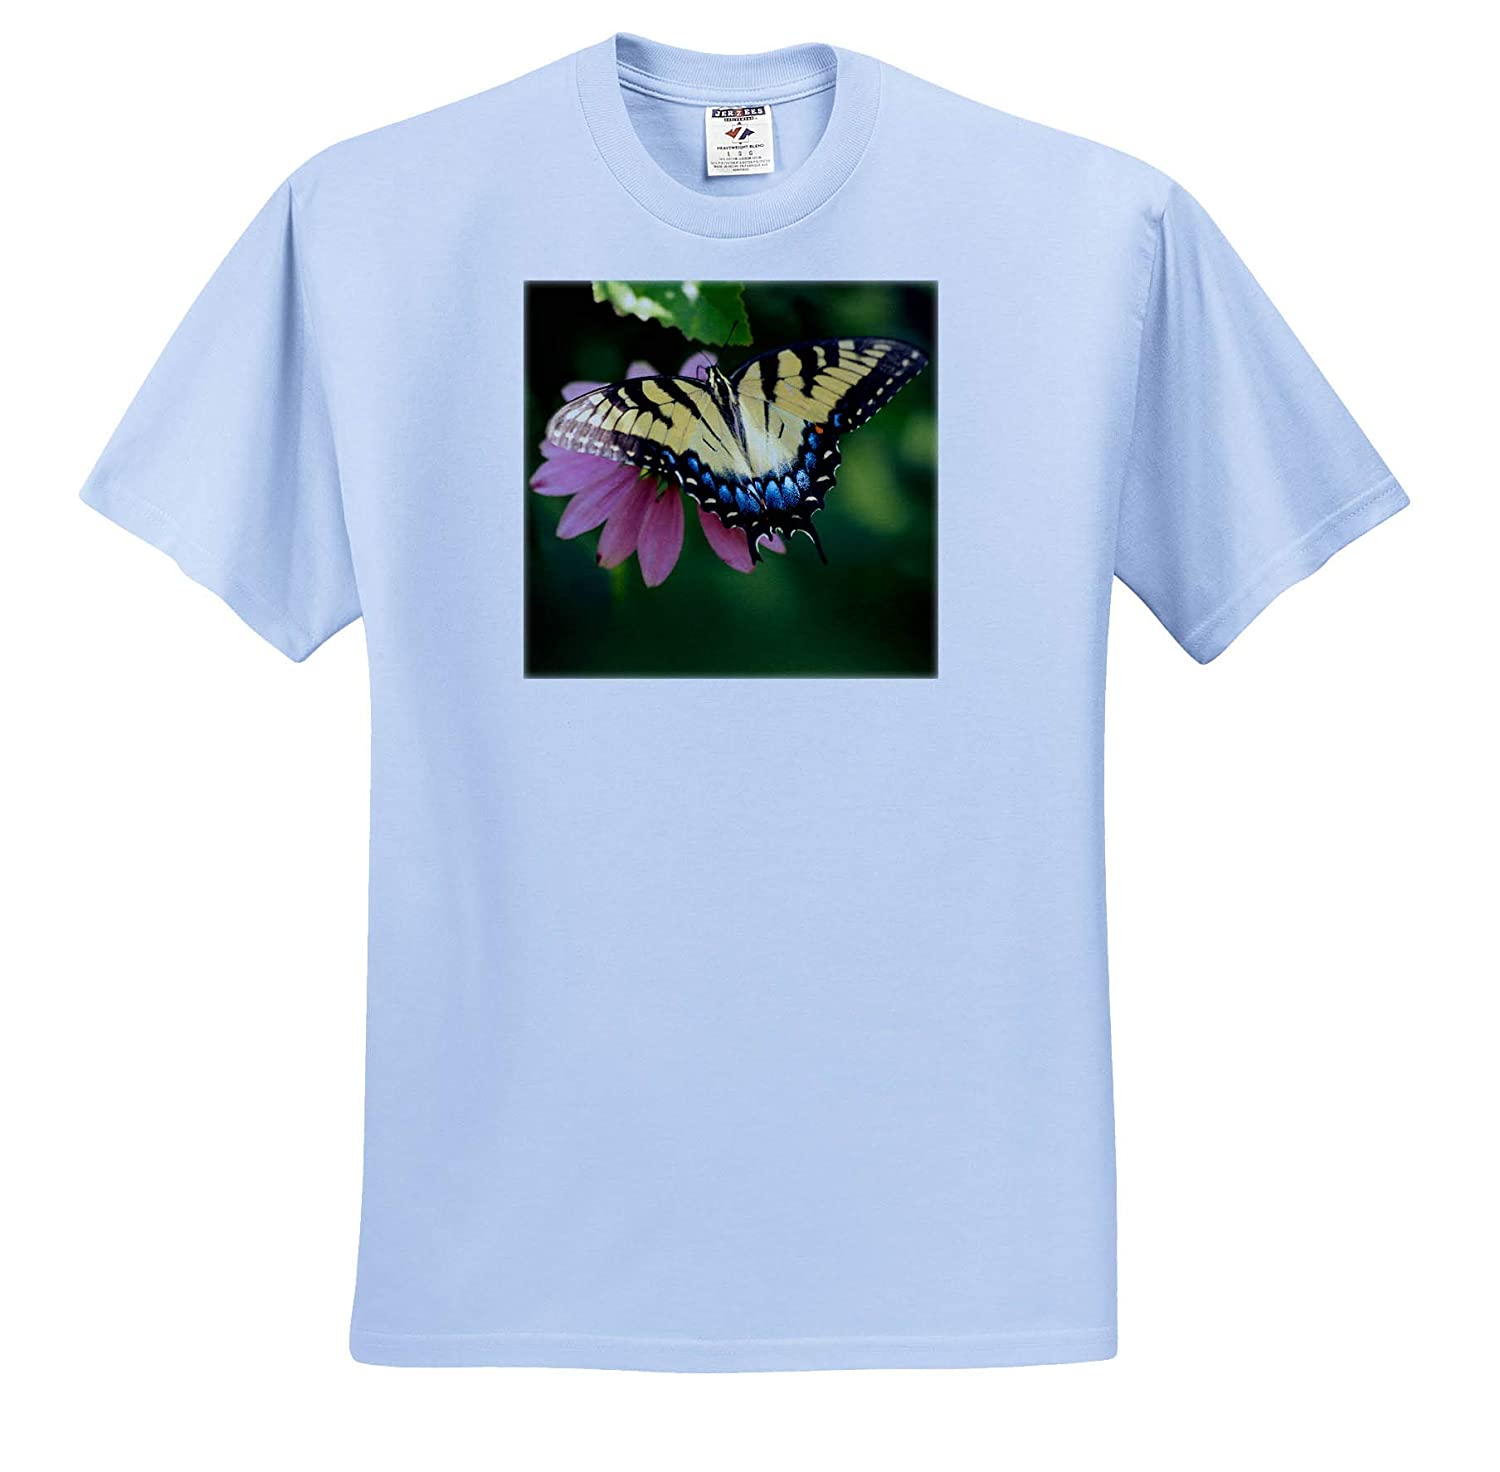 Insect 3dRose Stamp City - Adult T-Shirt XL ts/_320187 Top View Macro Photograph of an Eastern Tiger Swallowtail